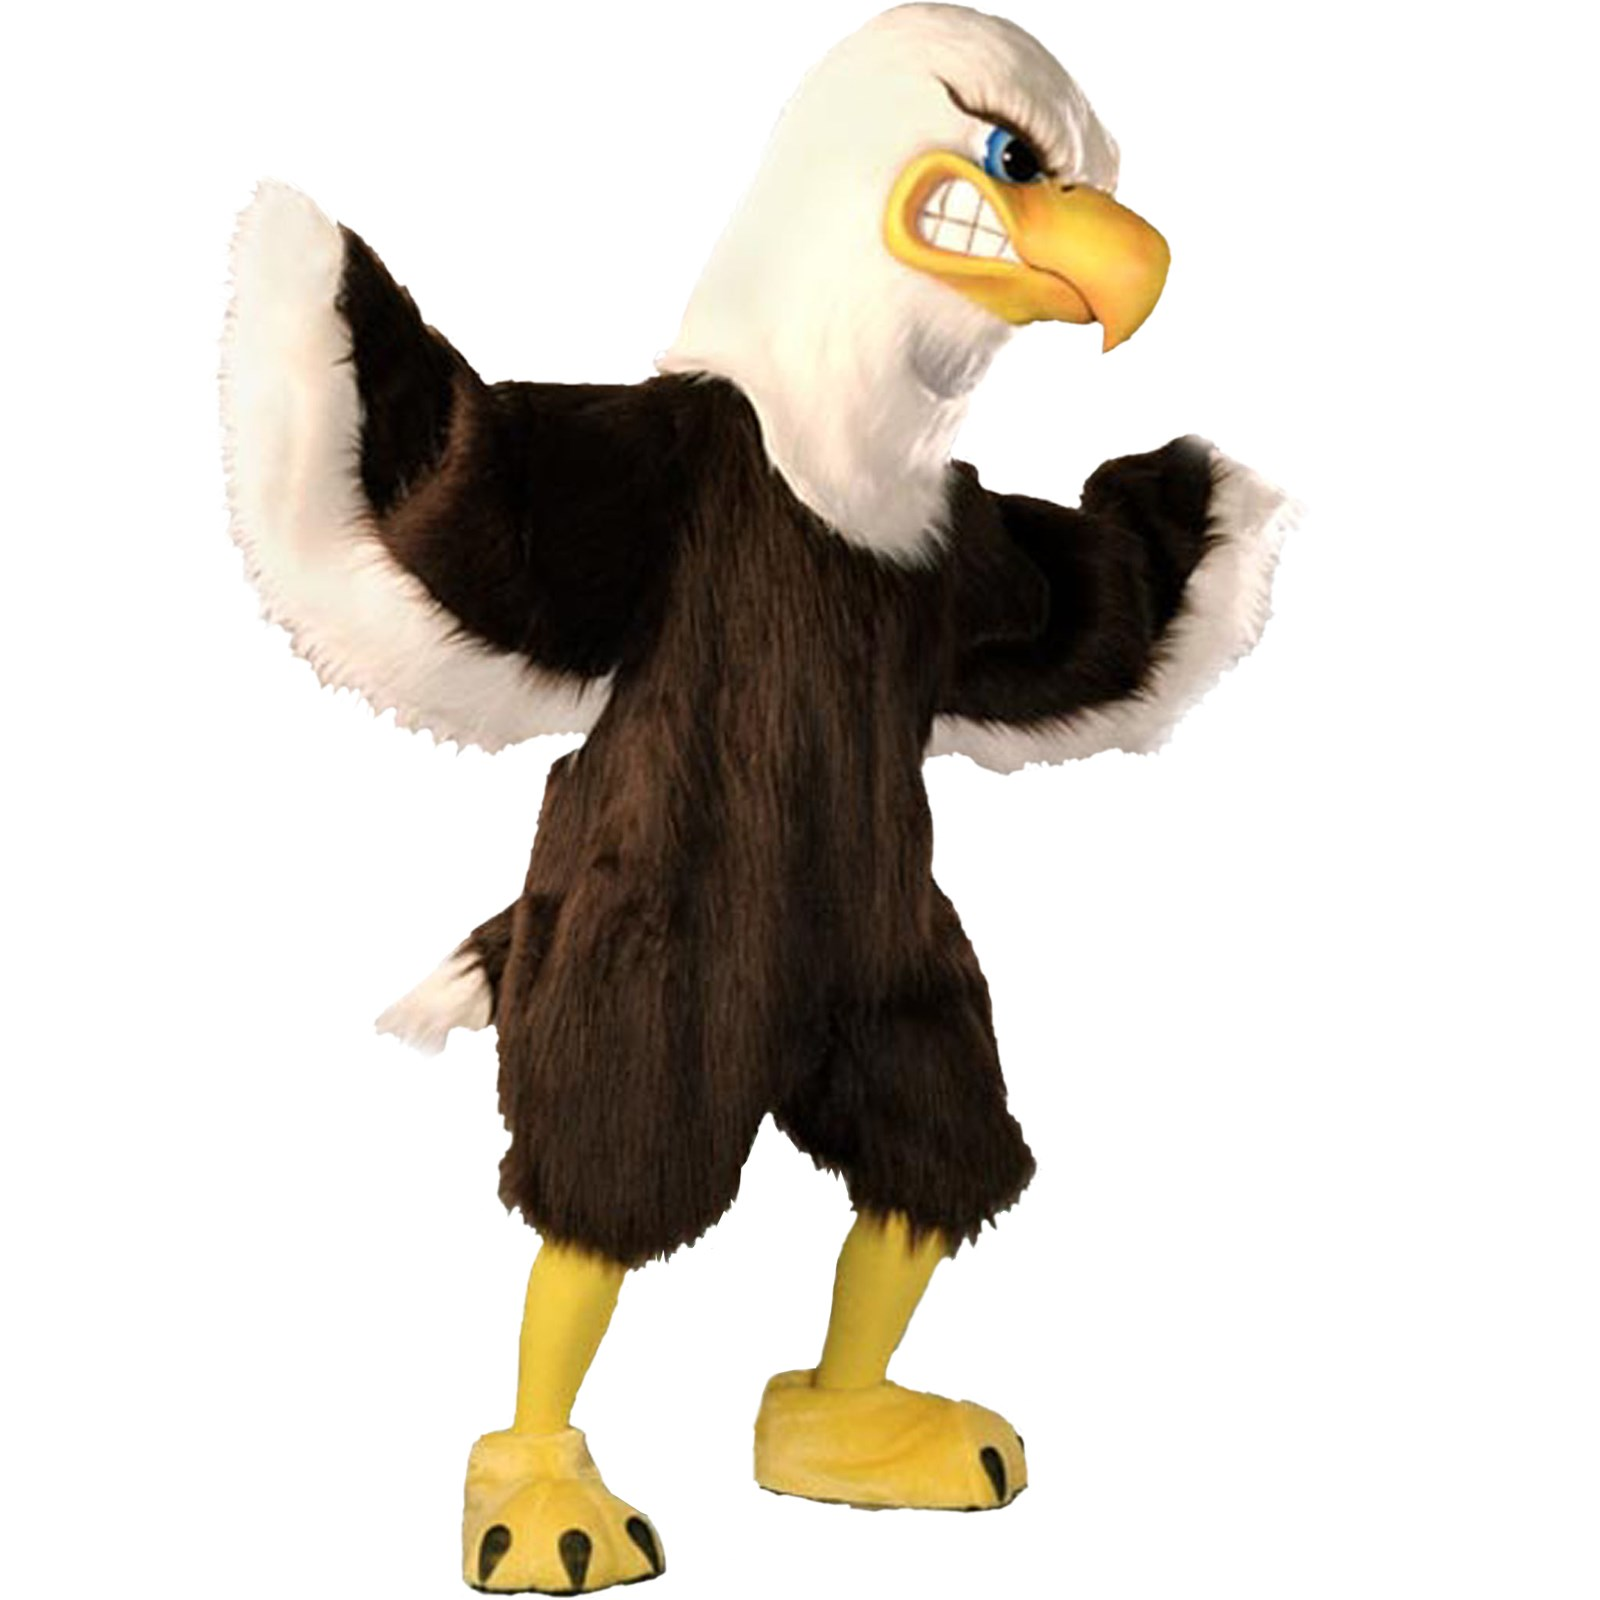 Mr. Majestic Eagle Adult Mascot Costume